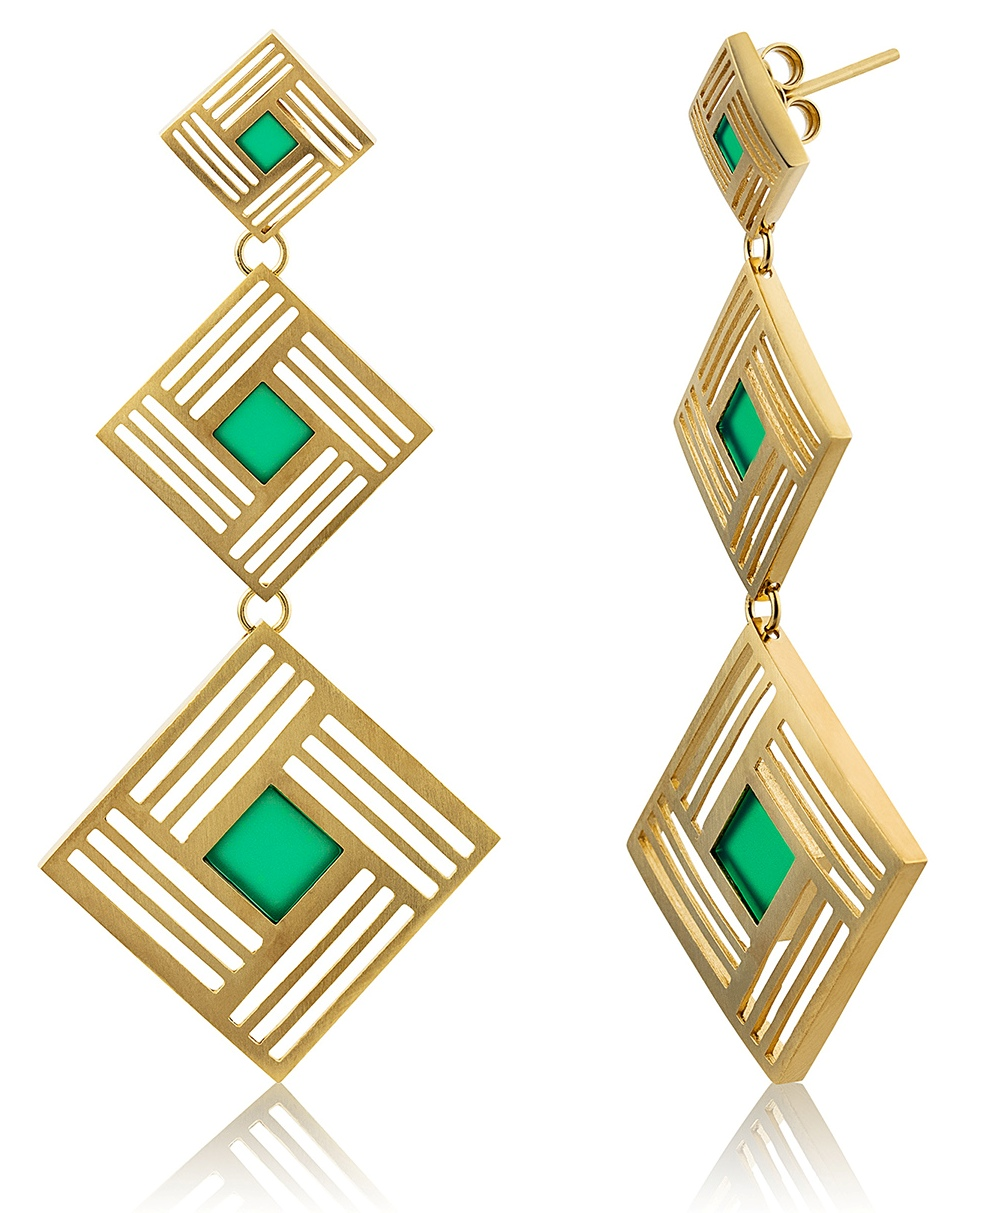 Llum triple long earrings